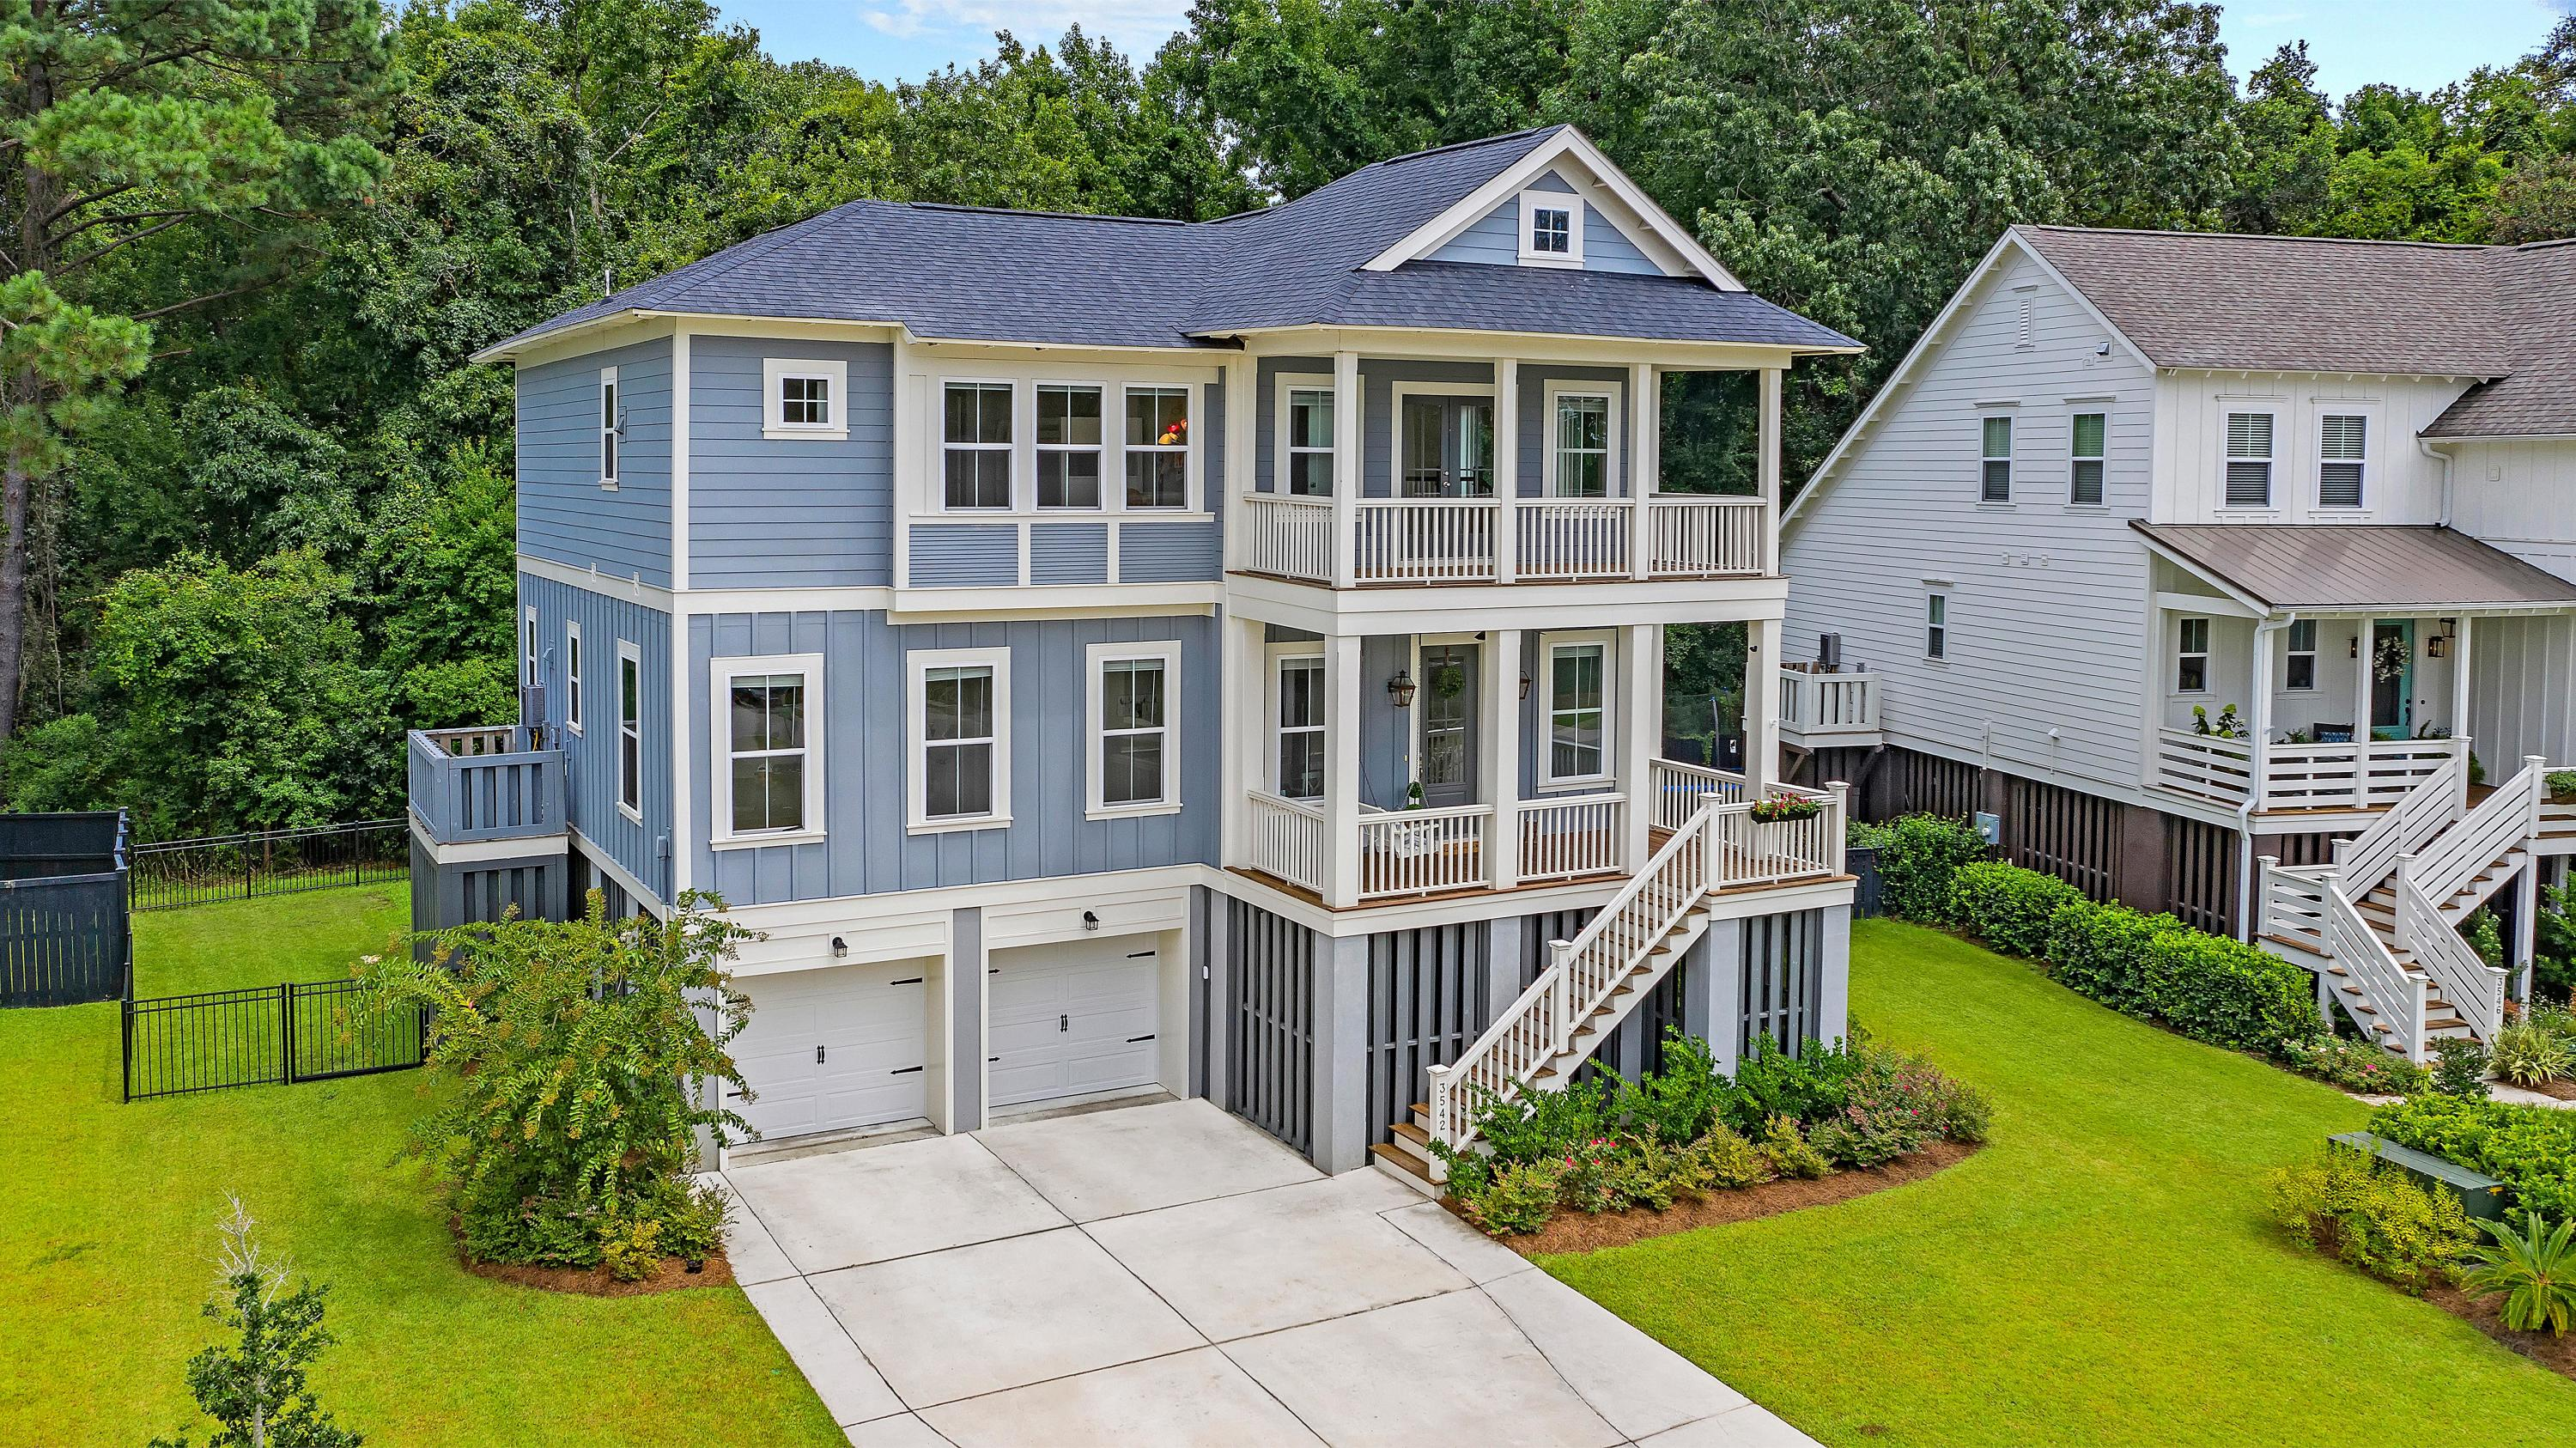 Stratton by the Sound Homes For Sale - 3542 Saltflat, Mount Pleasant, SC - 22